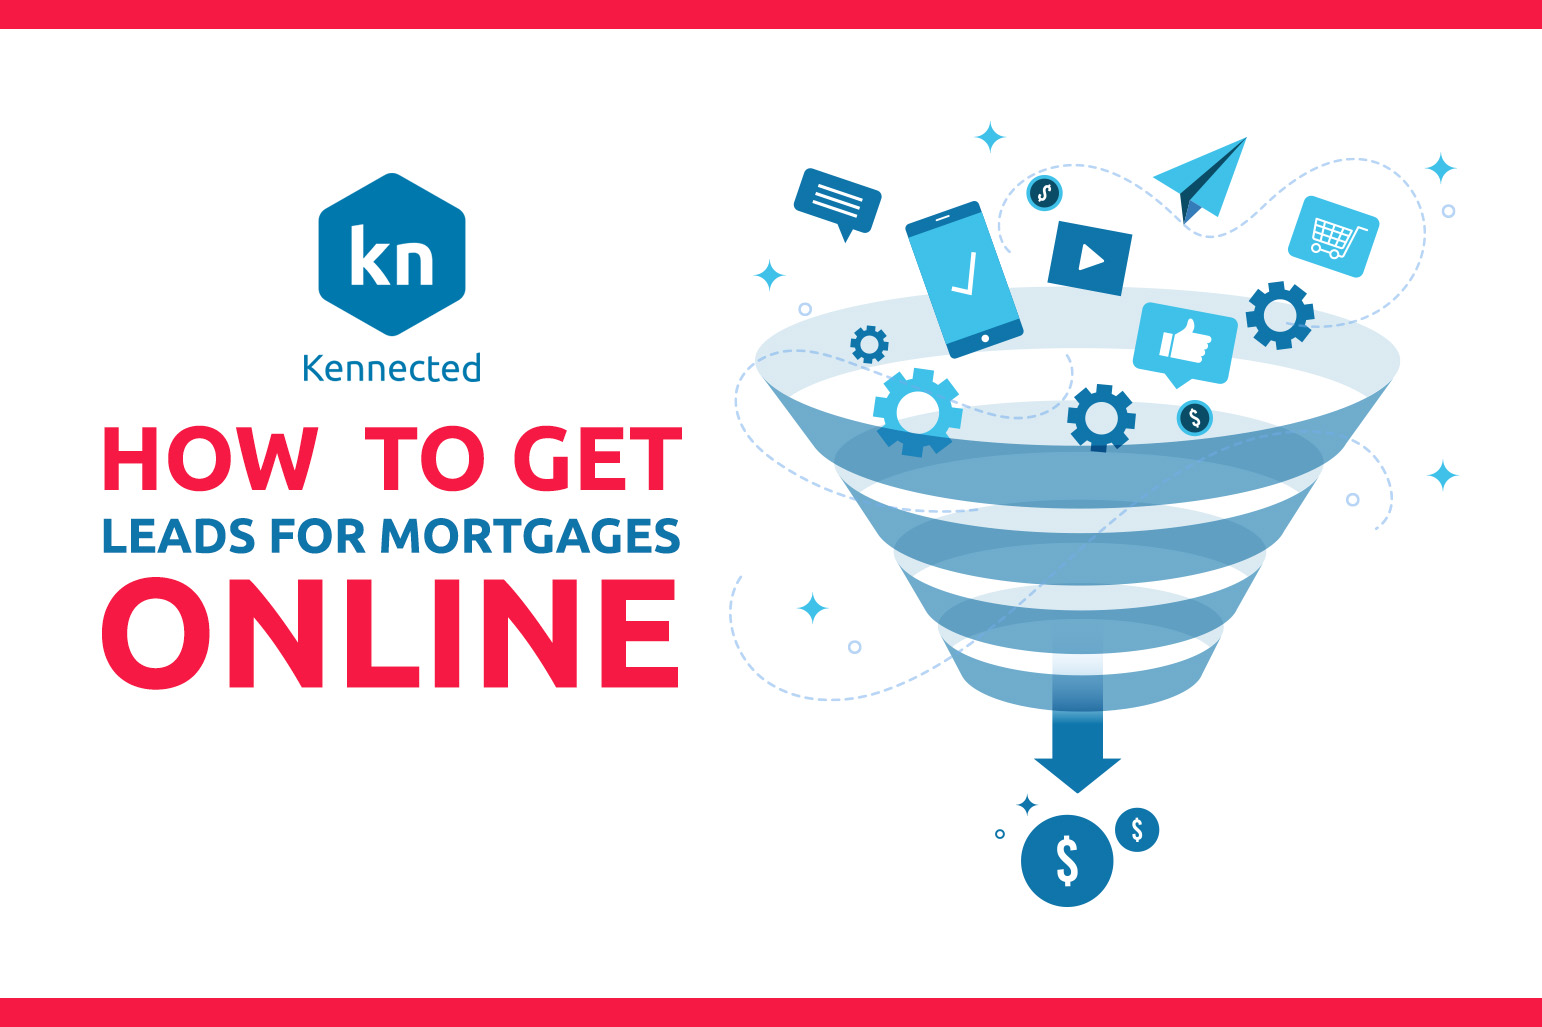 How To Get Leads For Mortgages Online